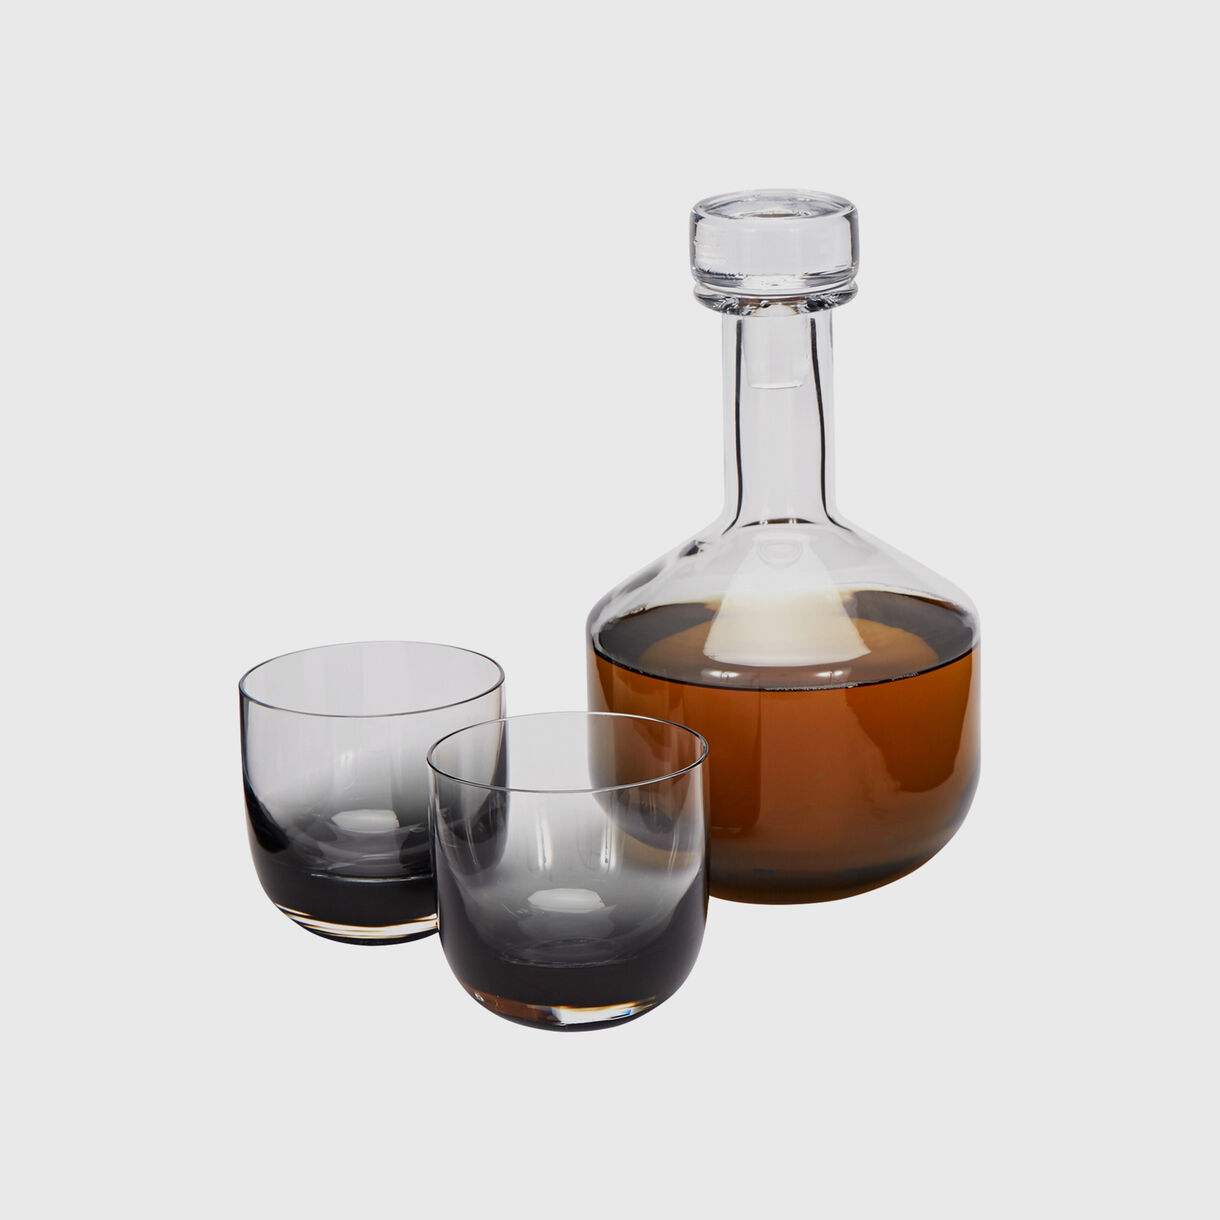 Tank Whiskey Decanter, Black, Full, with Glasses